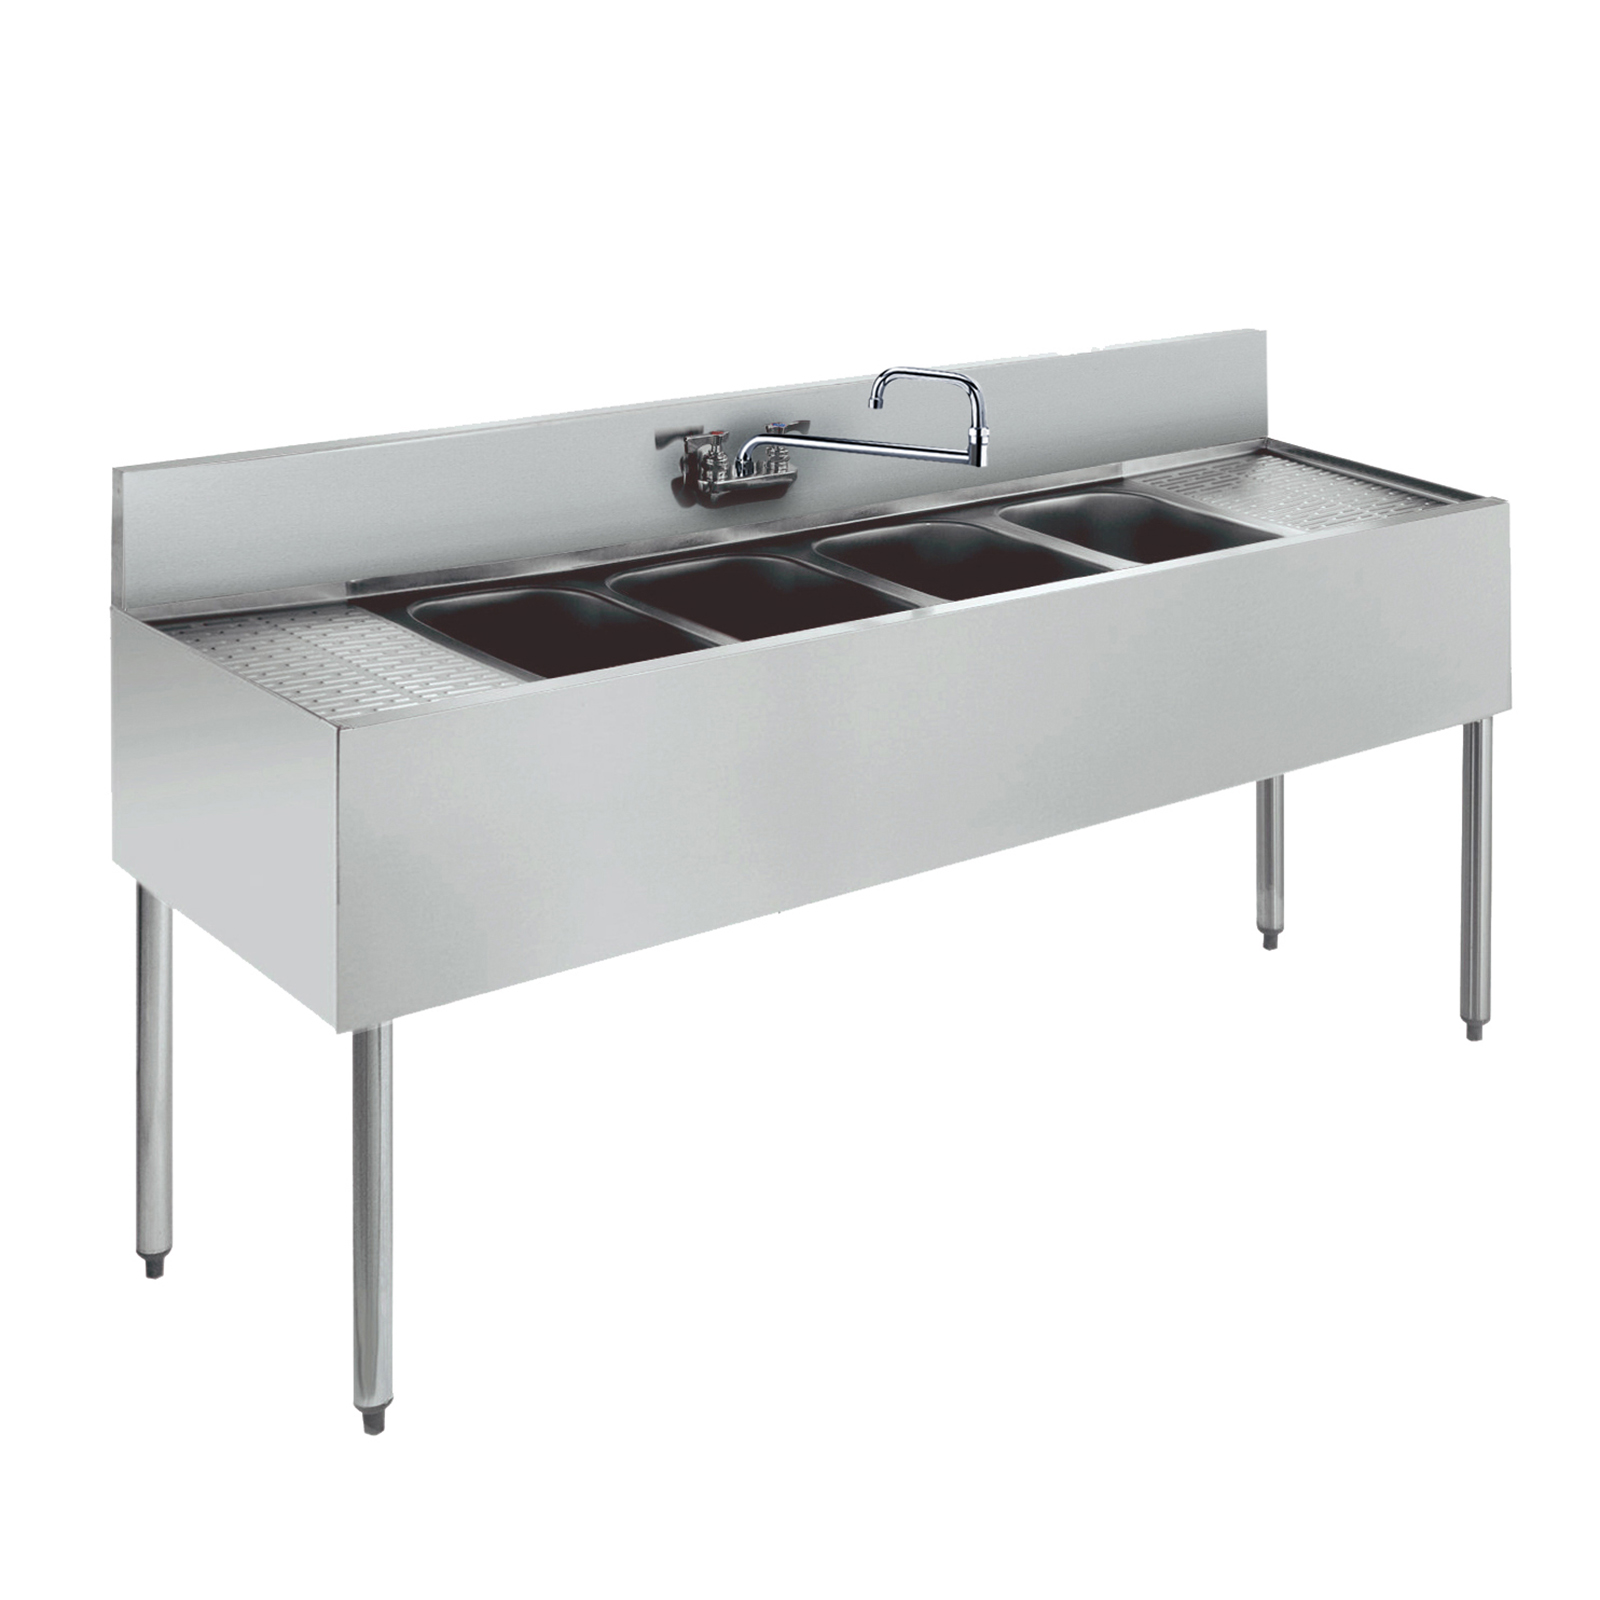 Krowne Metal KR18-74C underbar sink units